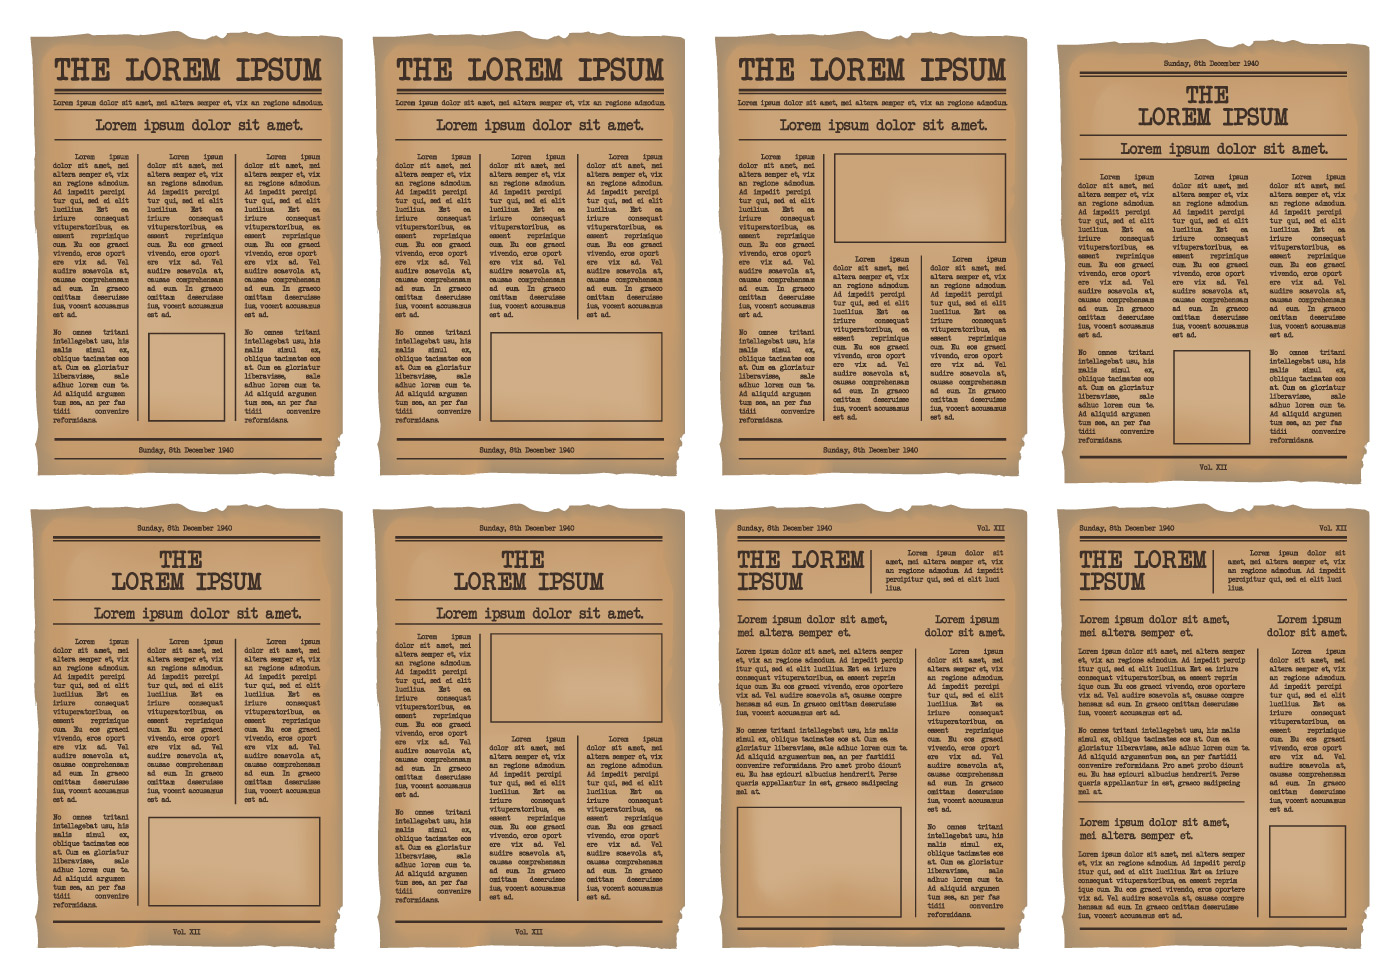 Old newspaper template vector set download free vector art stock old newspaper template vector set download free vector art stock graphics images saigontimesfo